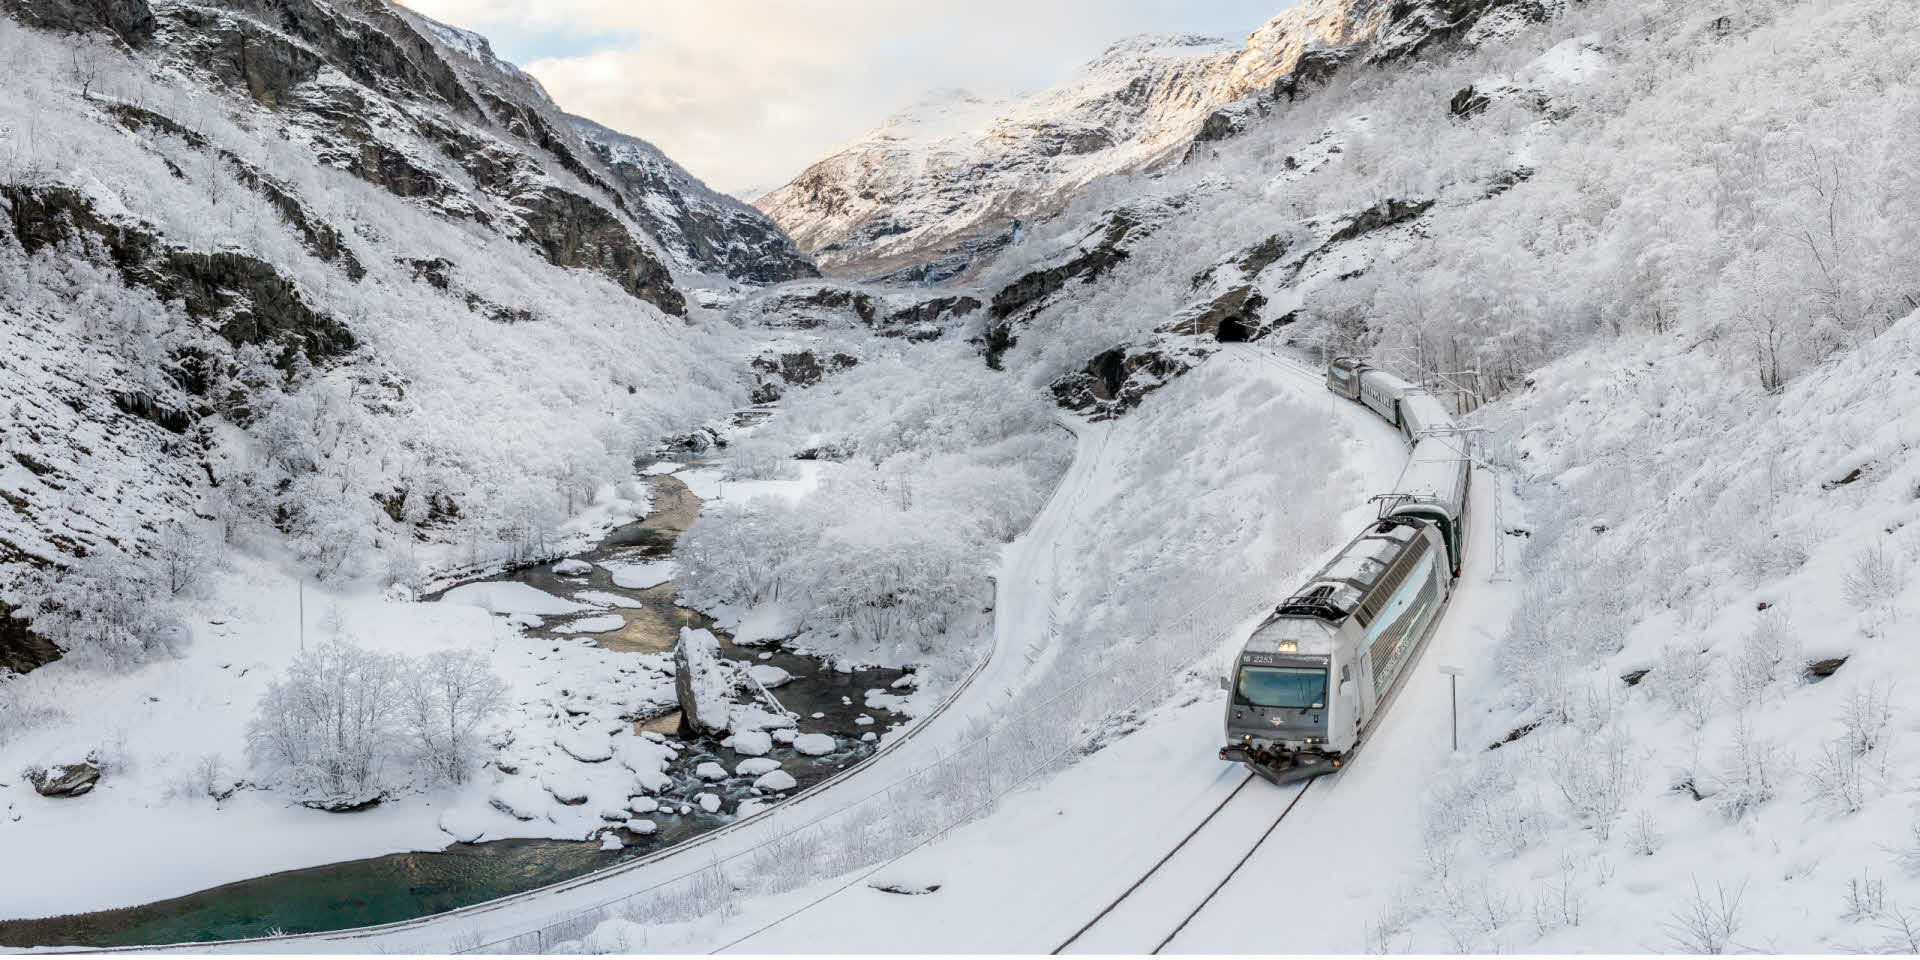 A train on its way down the Flåm Valley on a snowy winter day